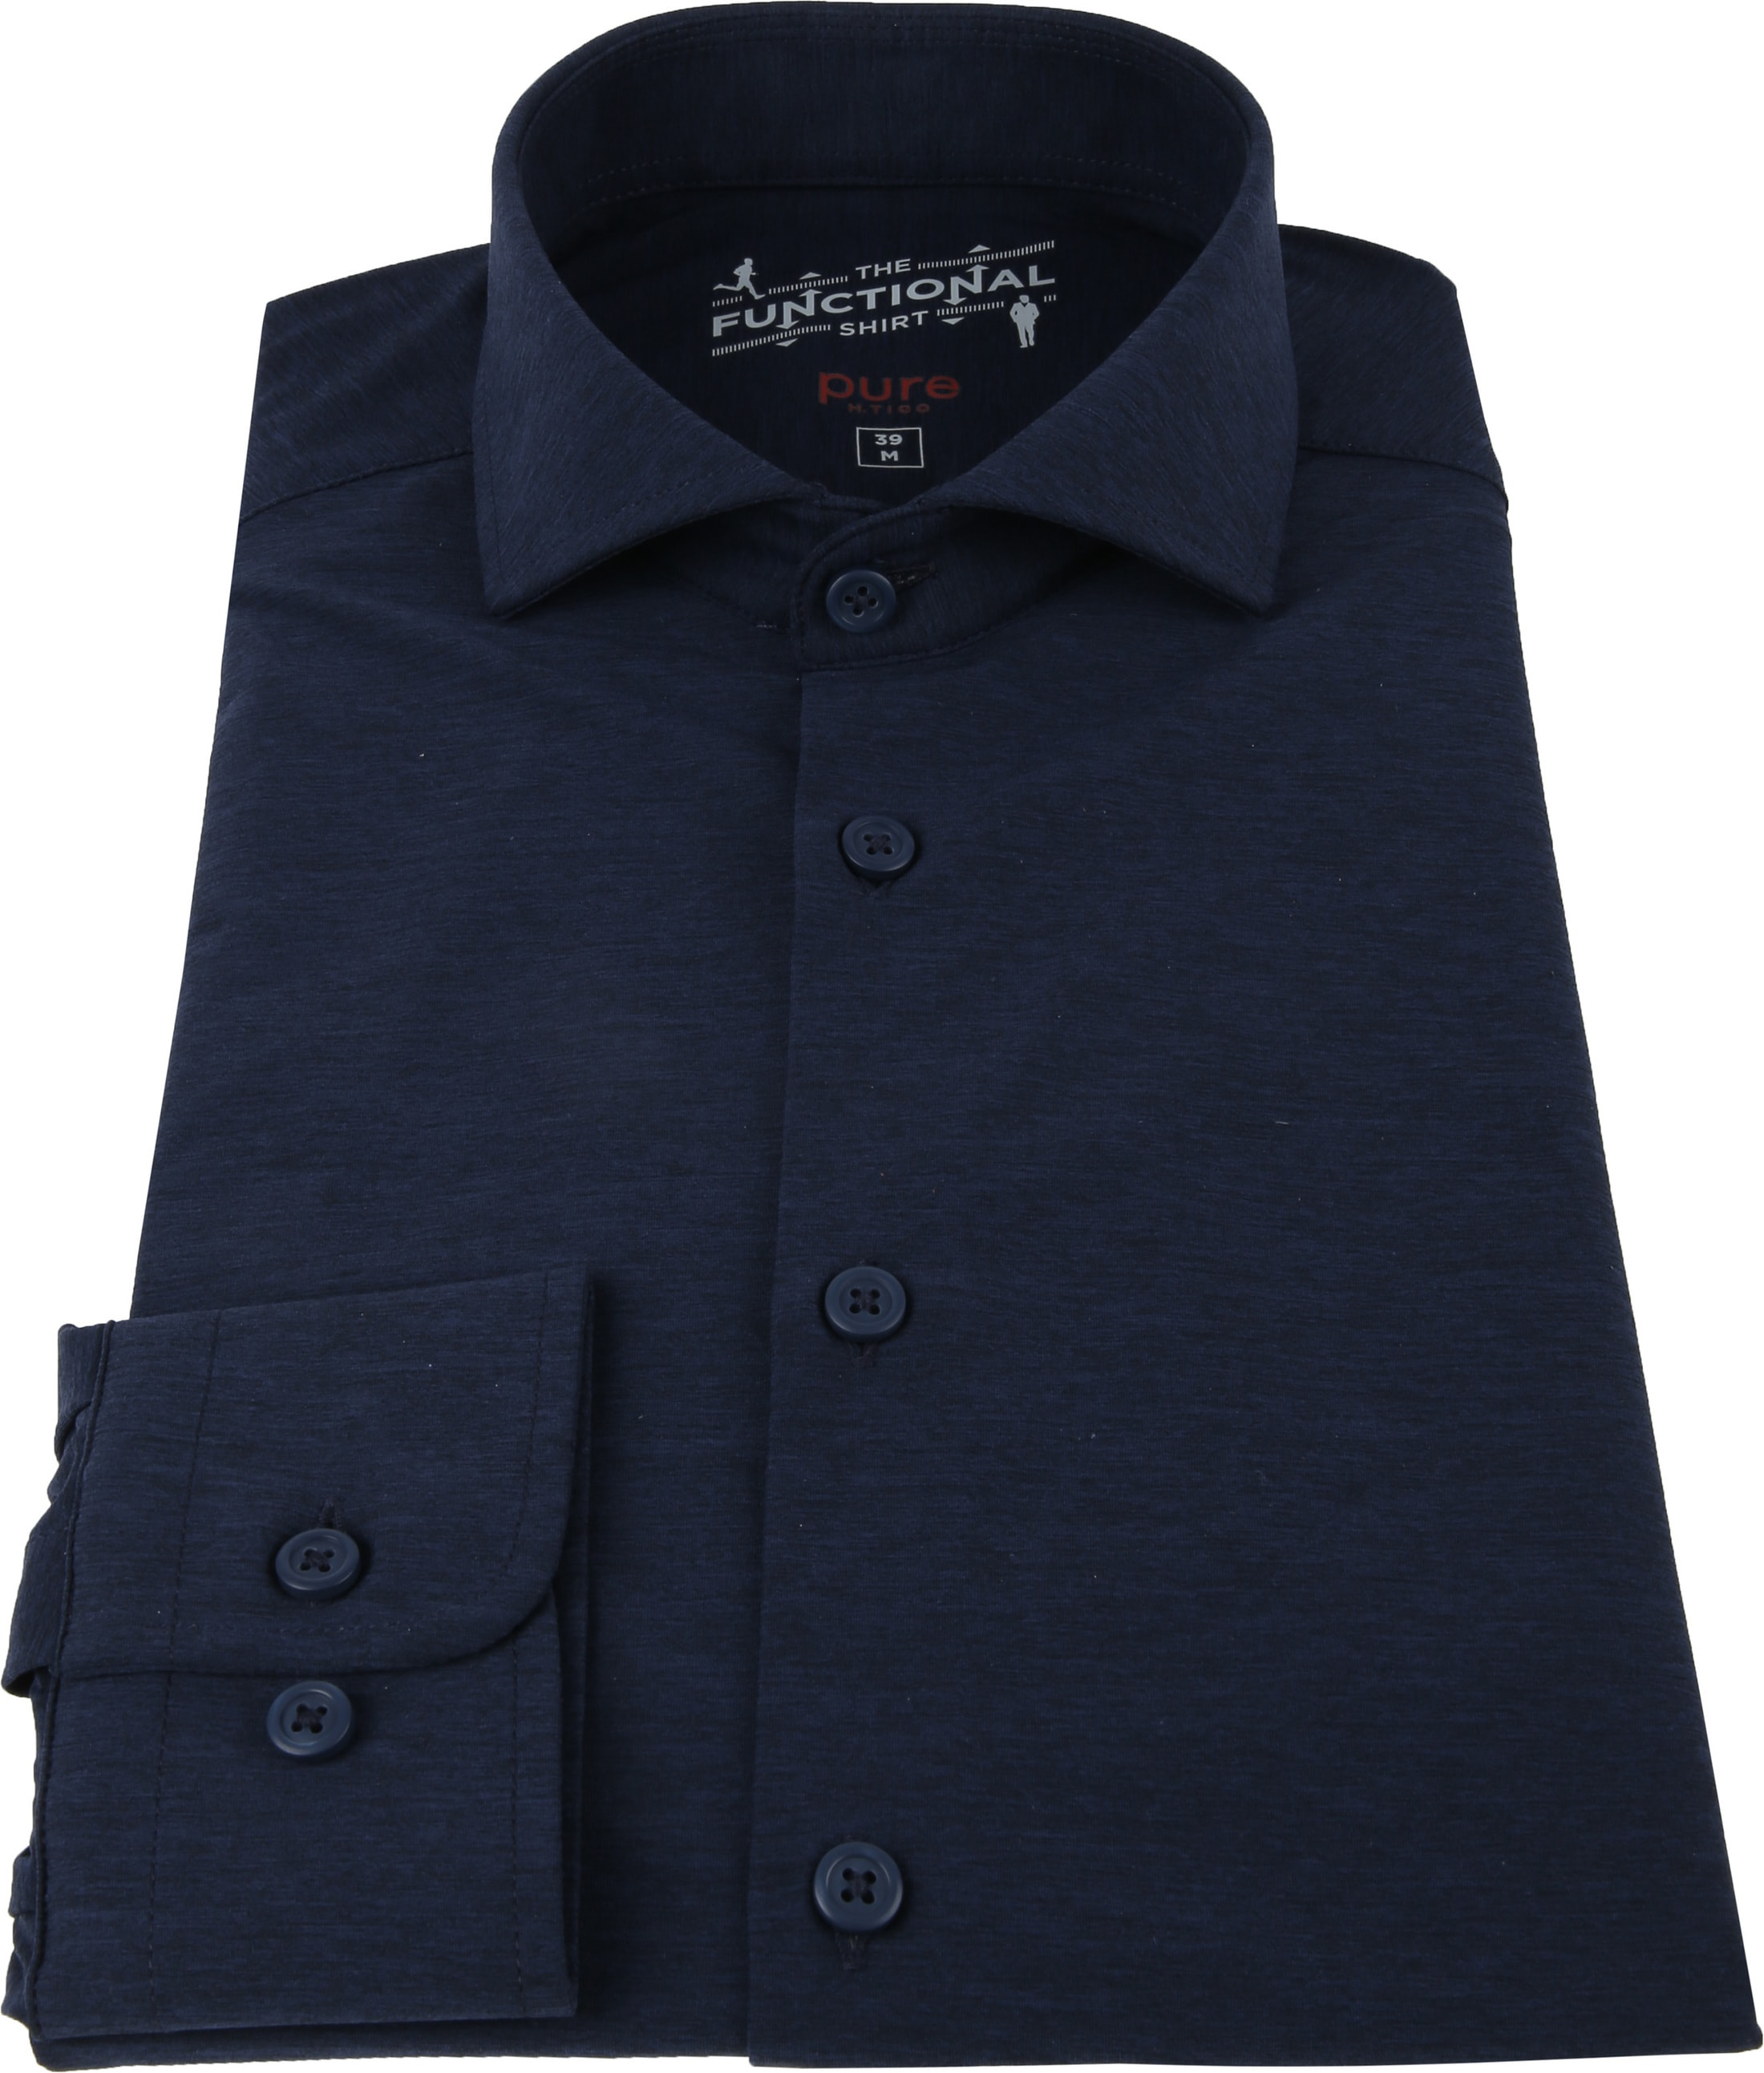 Pure H.Tico The Functional Shirt Navy photo 2